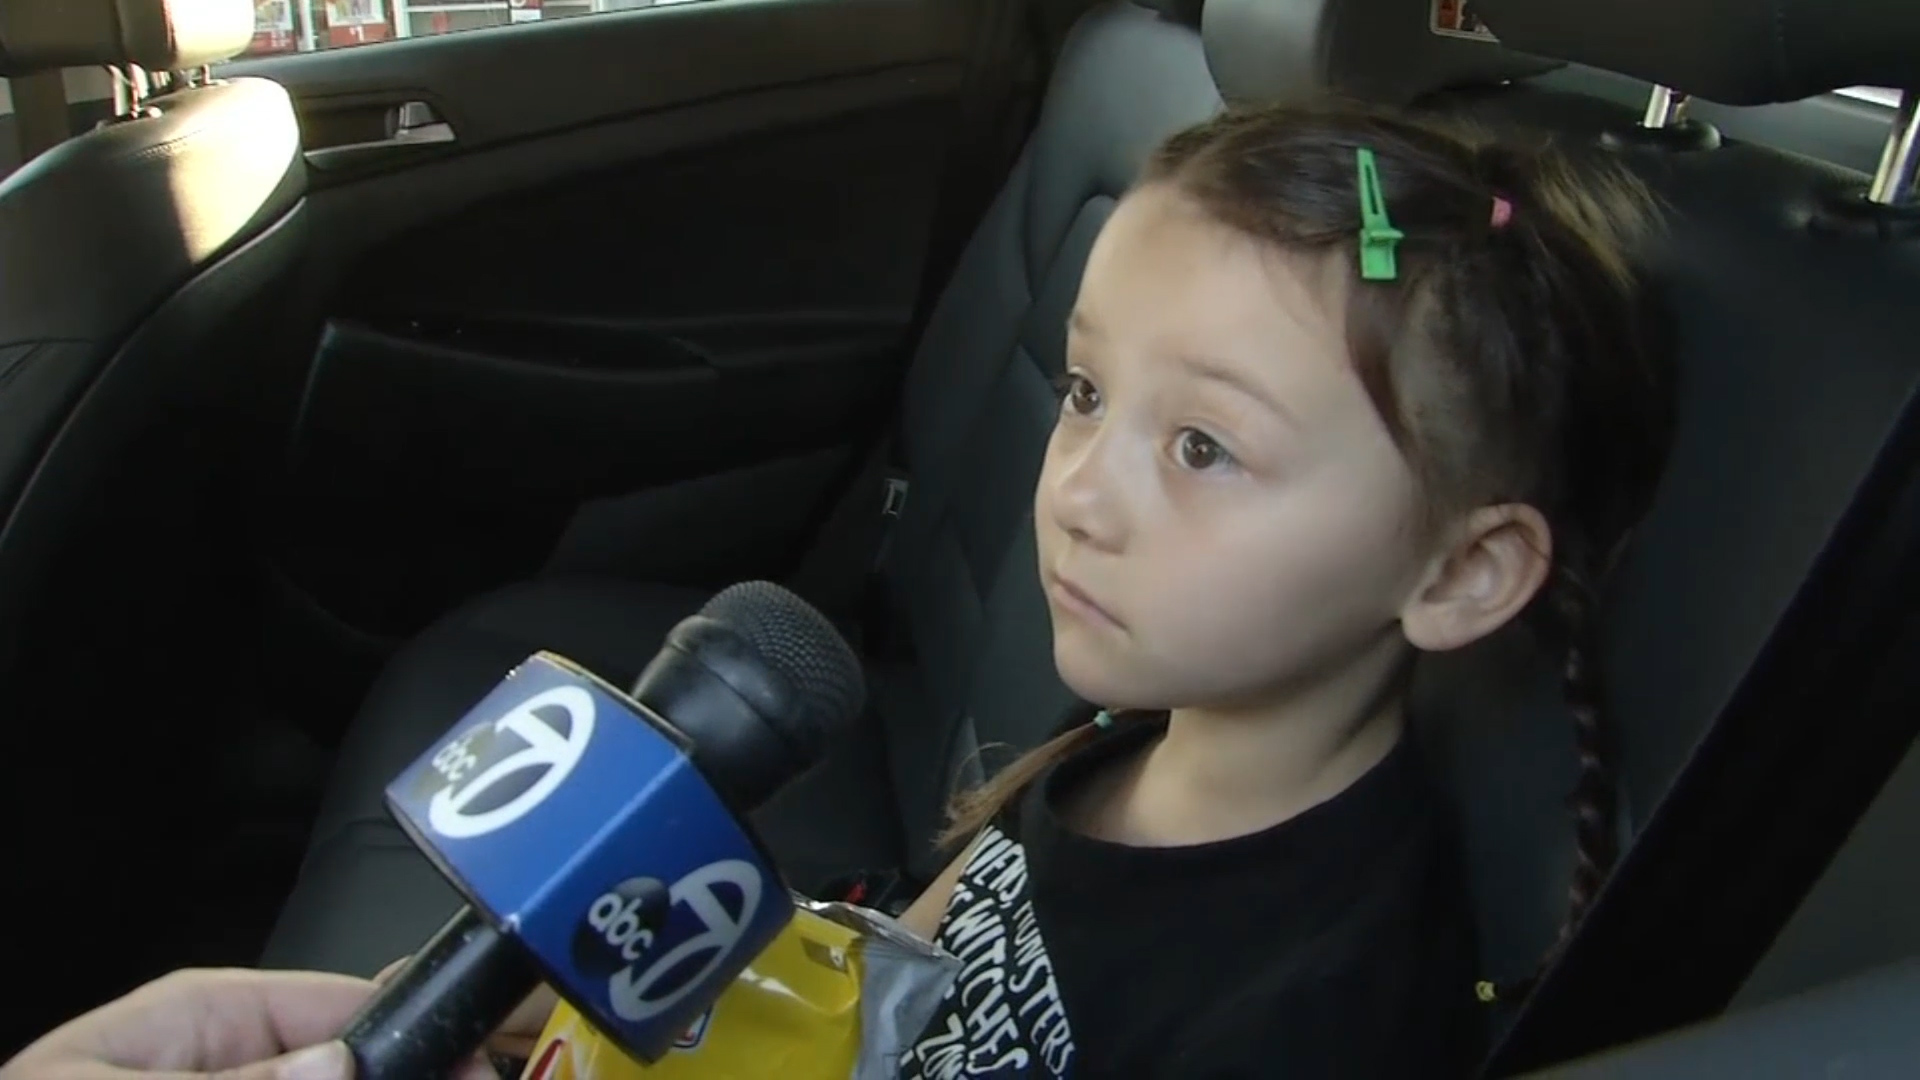 5-Year-Old Behind The Wheel During A Scary School Bus Crash photo